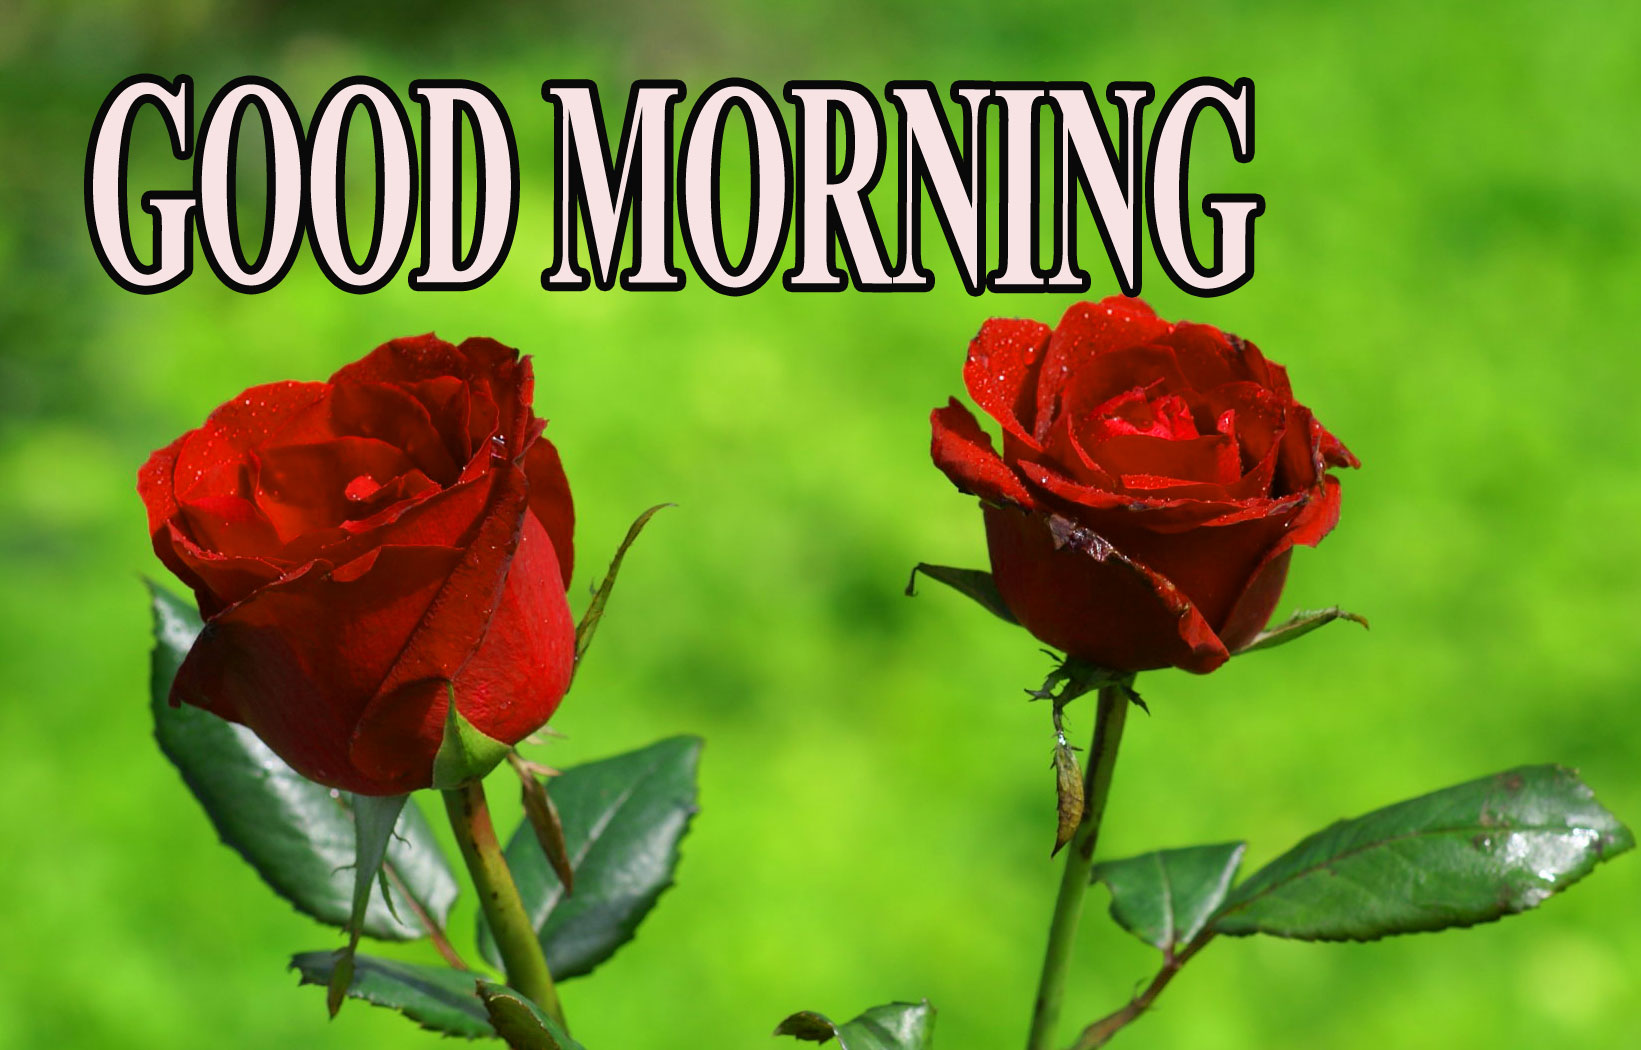 BEAUTIFUL LATEST AMAZING ALL GOOD MORNING WISHES IMAGES WALLPAPER HD DOWNLOAD